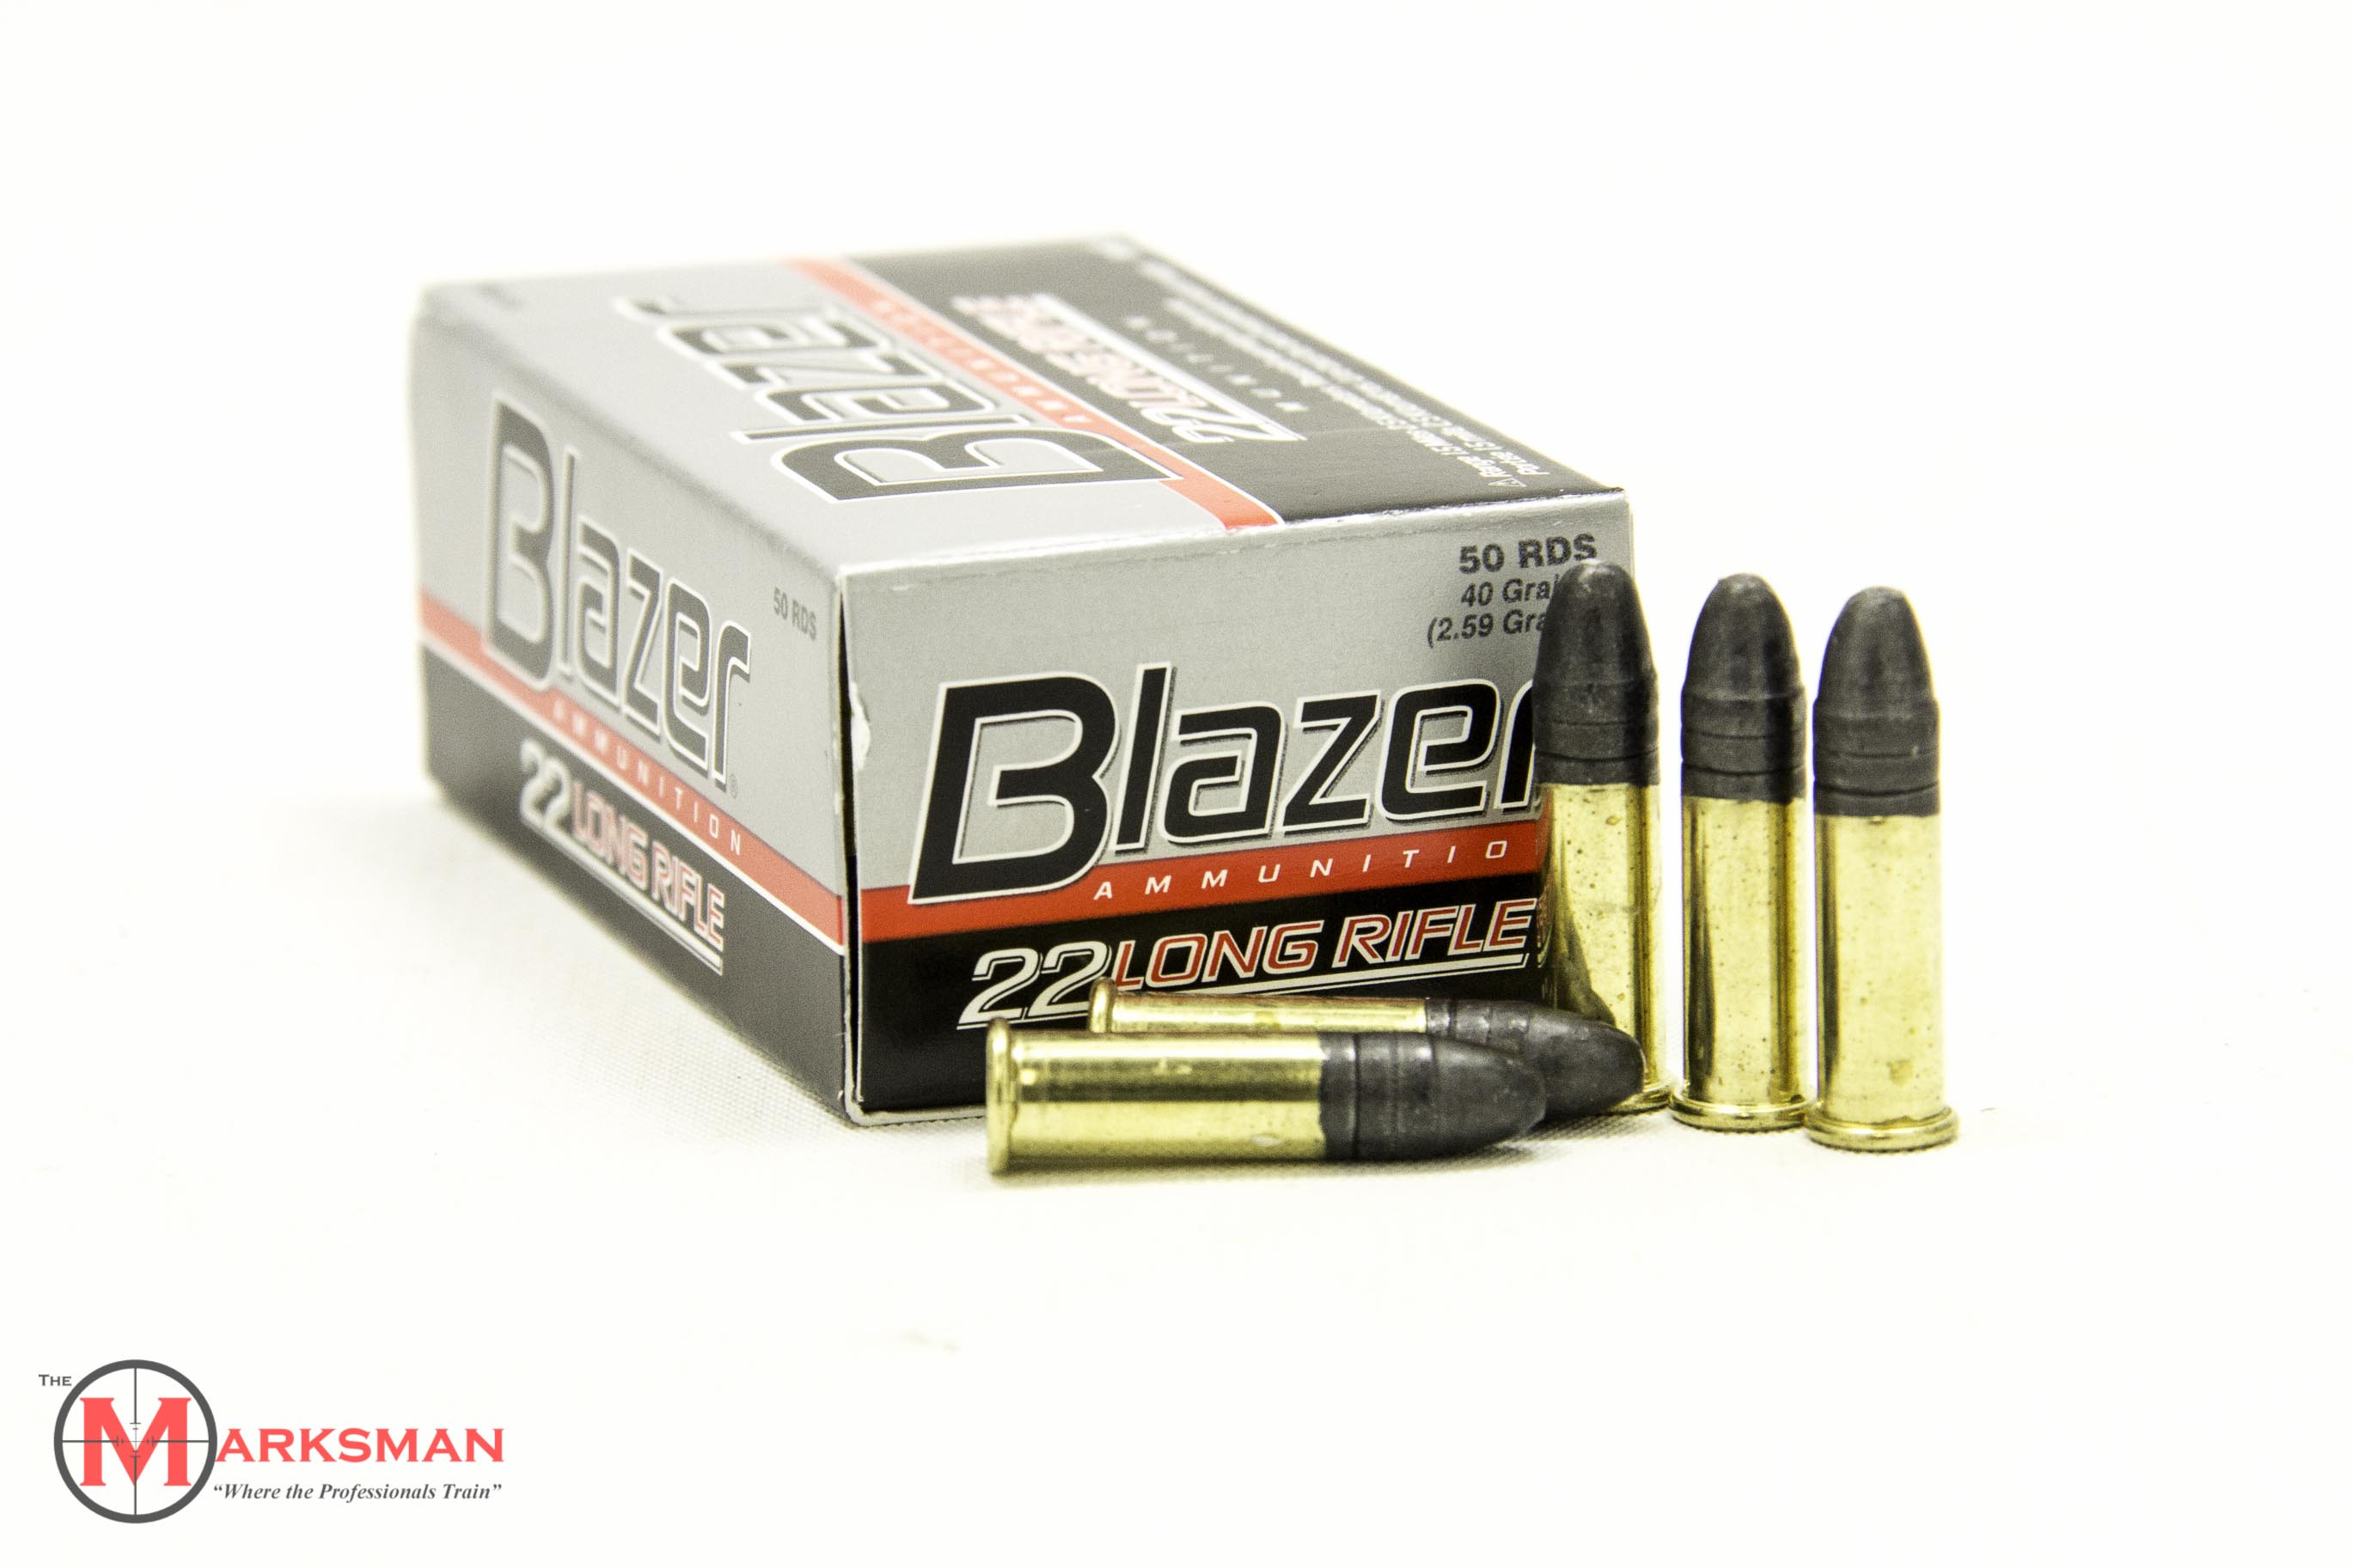 CCI Blazer .22 LR, 40 grain LRN NEW 50 RD Box 0021-img-0